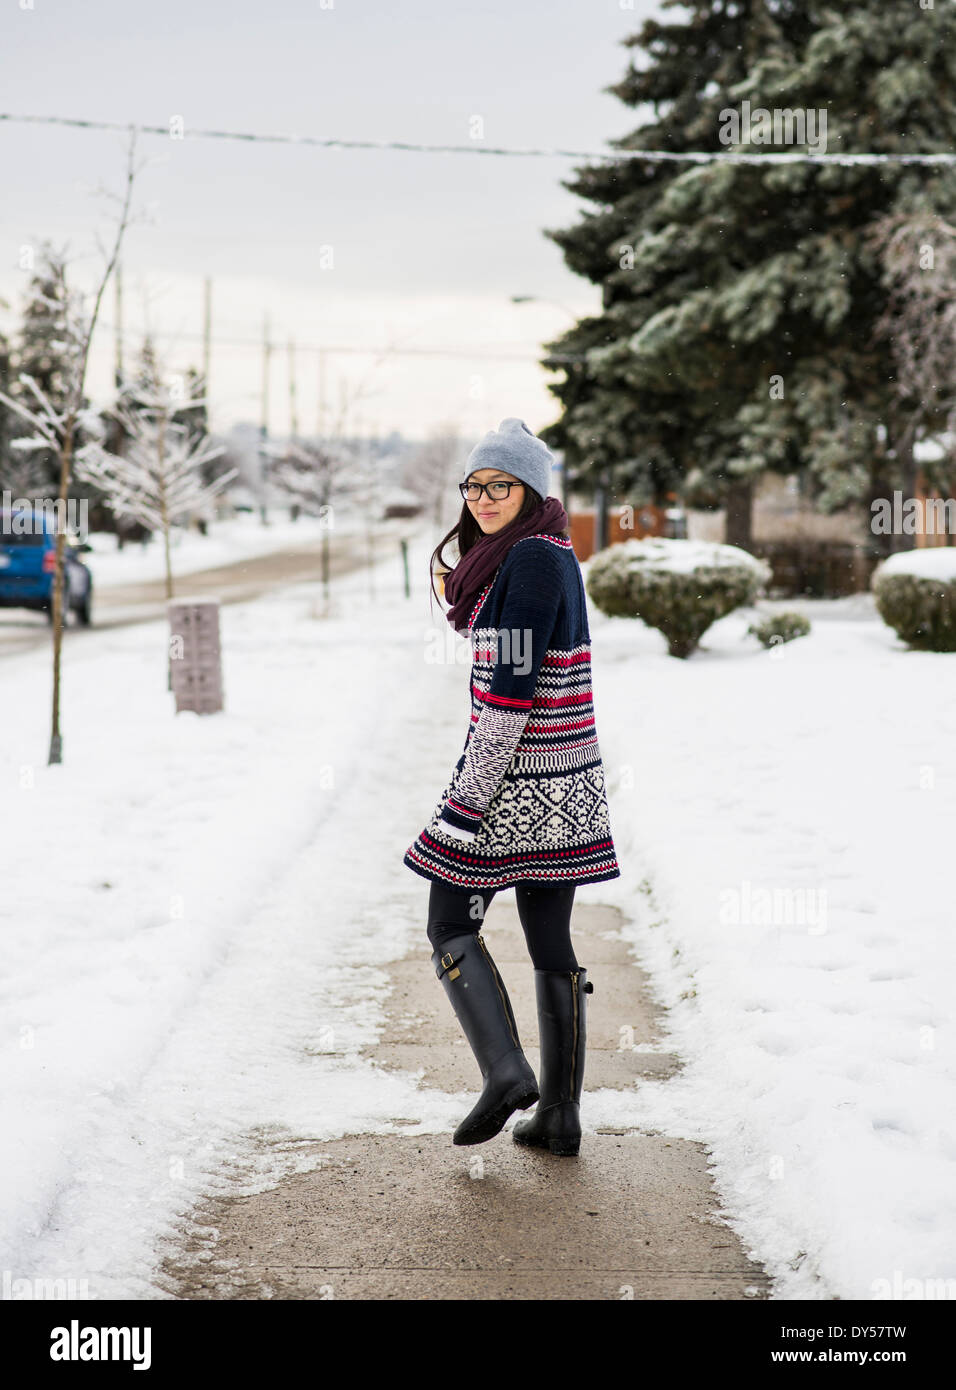 Young woman walking down snow covered street - Stock Image